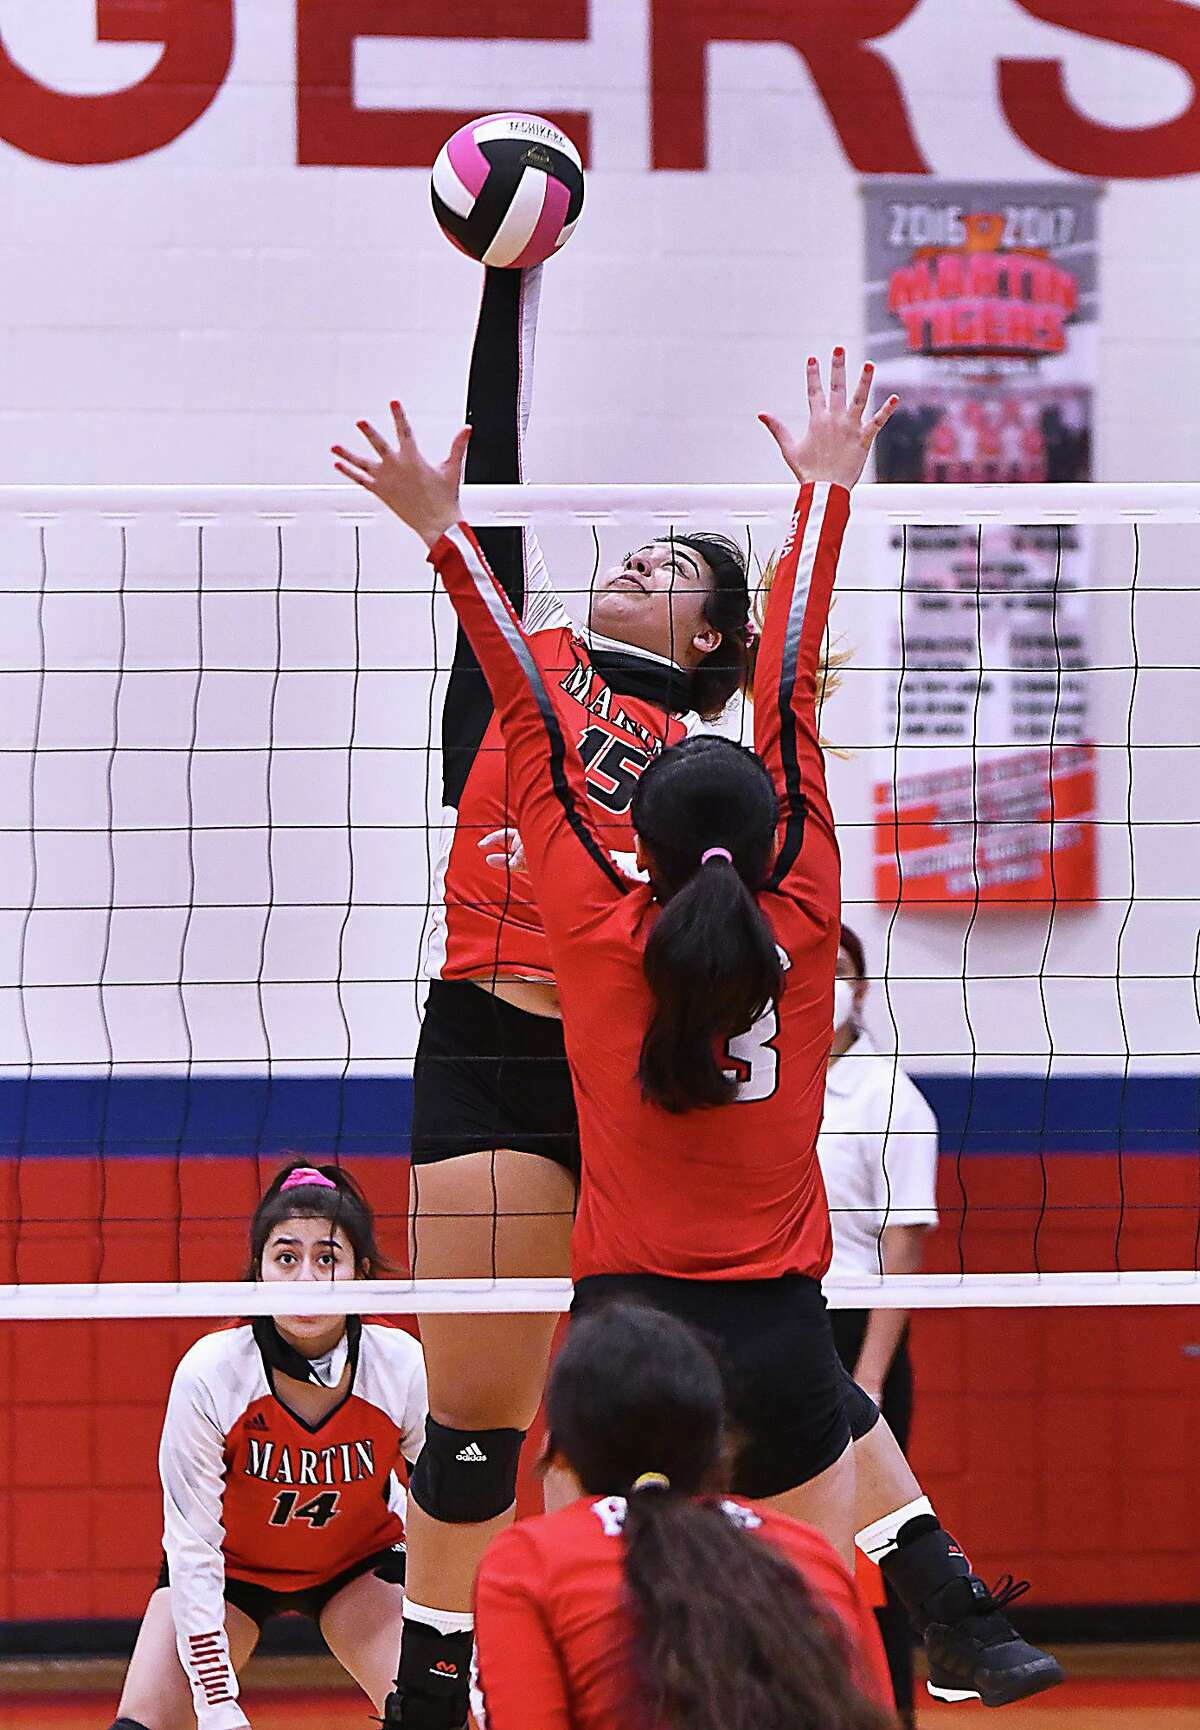 Melanie Duron combined for 38 kills in three matches as Martin got off to a 3-0 start Friday at the Sinton Tournament.